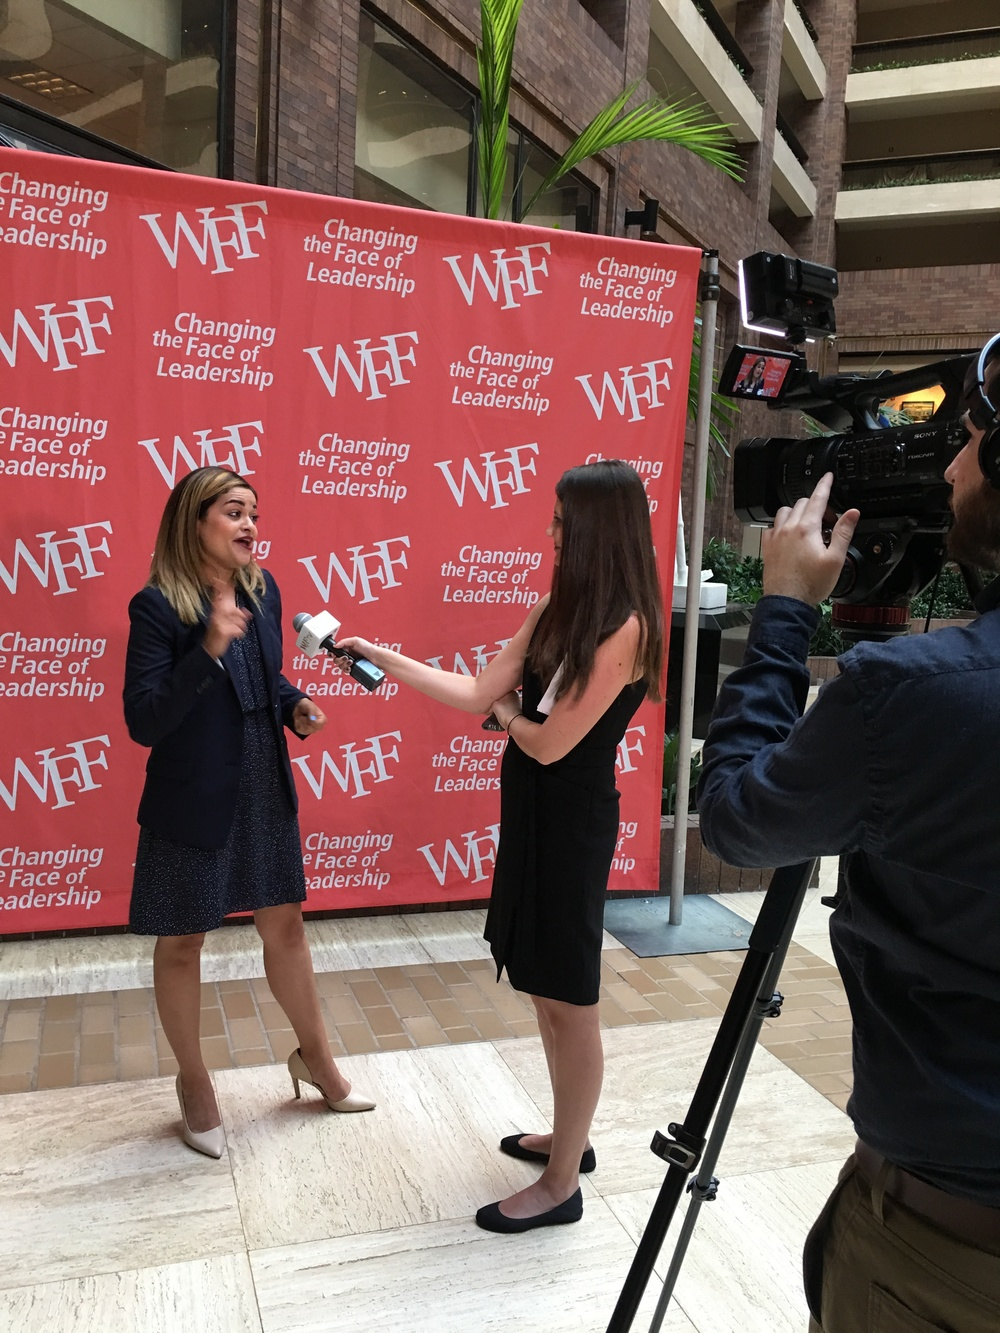 When I mean it, I mean it. If you followed along on Snapchat, MsDallasMaven, then you got a glimpse of my impassioned interview with Women's Foodservice Forum TV!